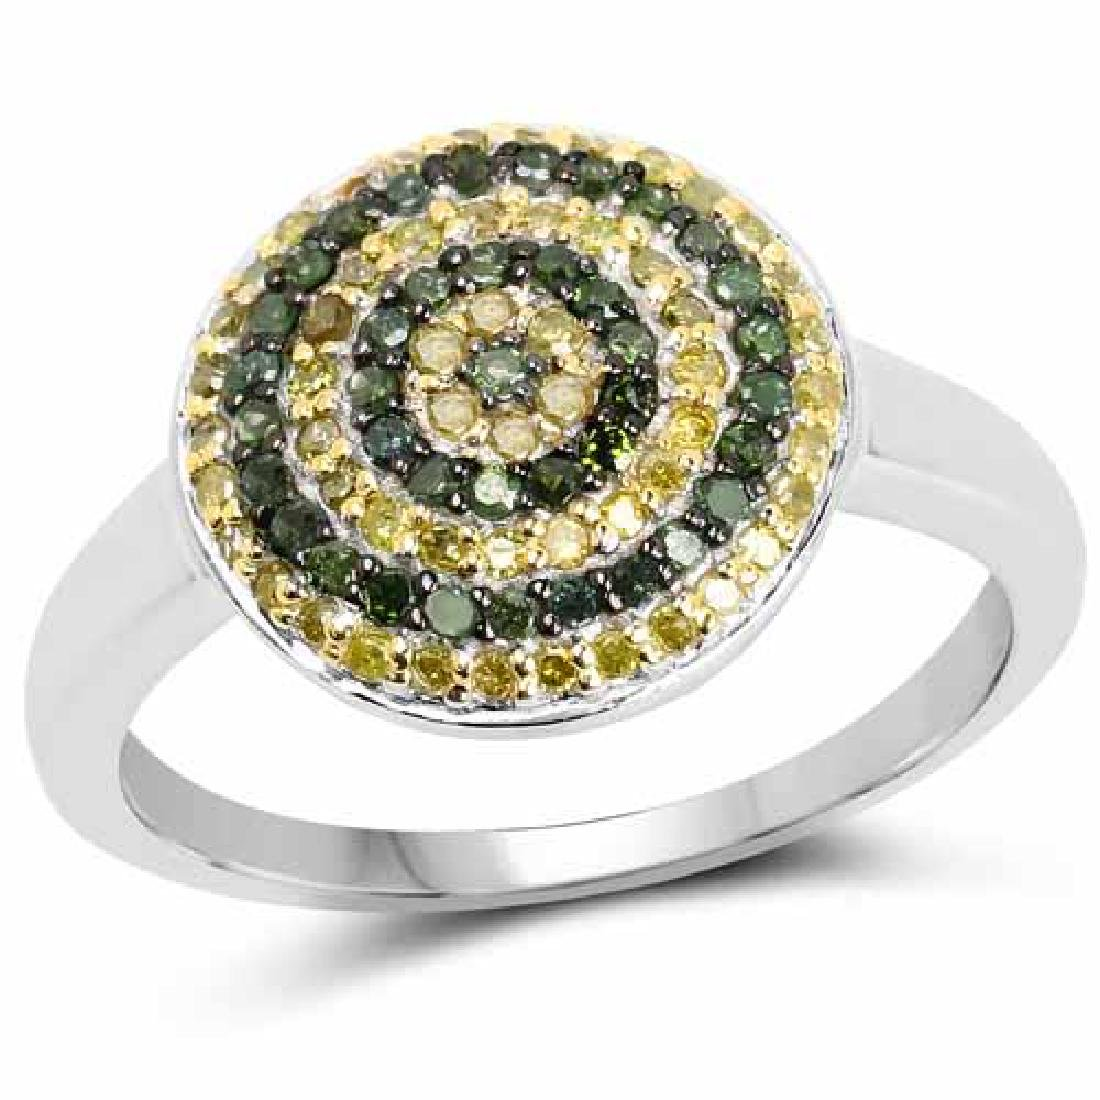 0.39 Carat Genuine Green Diamond and Yellow Diamond .92